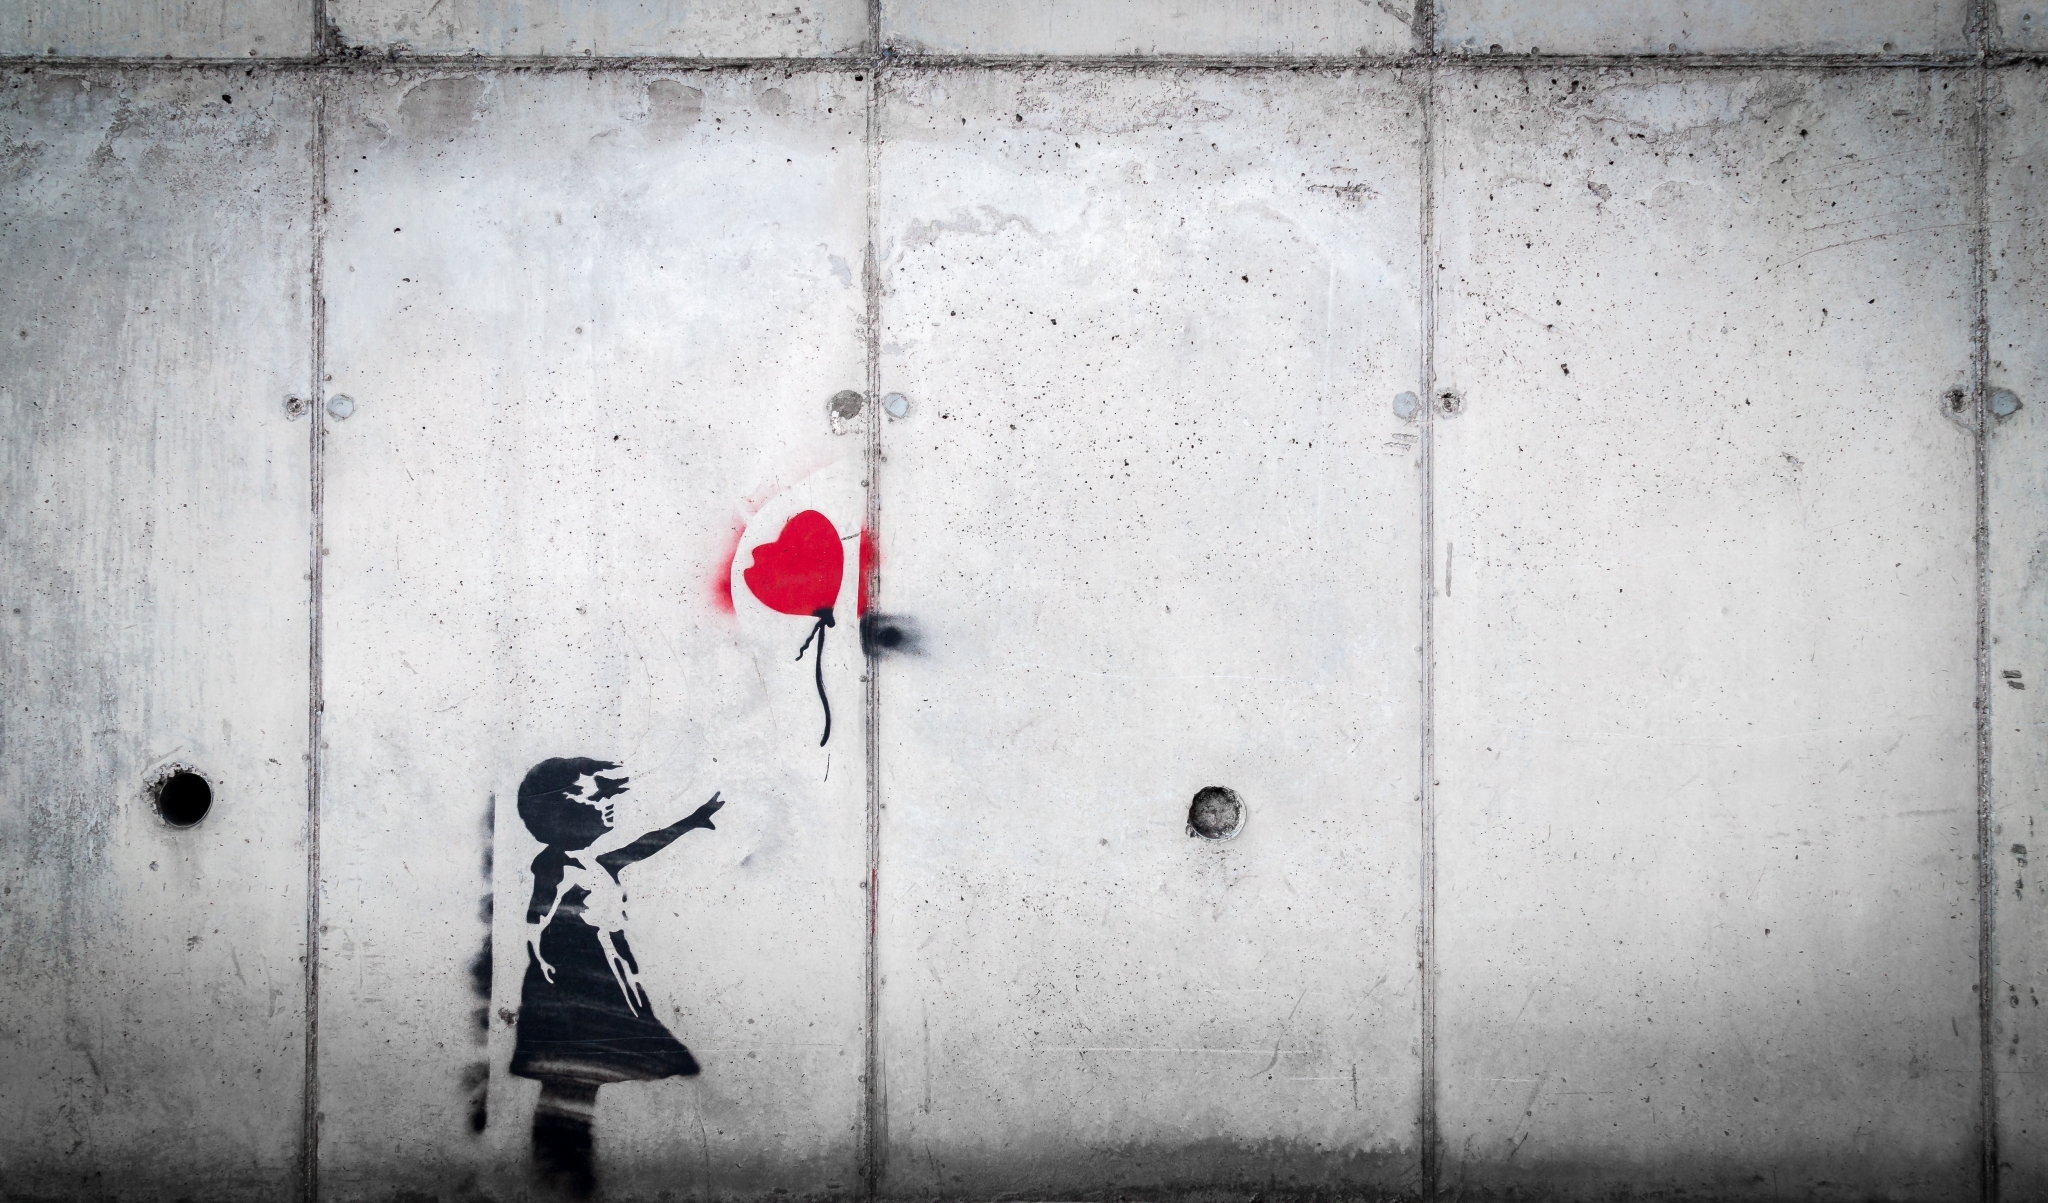 girl reaching for red heart balloon